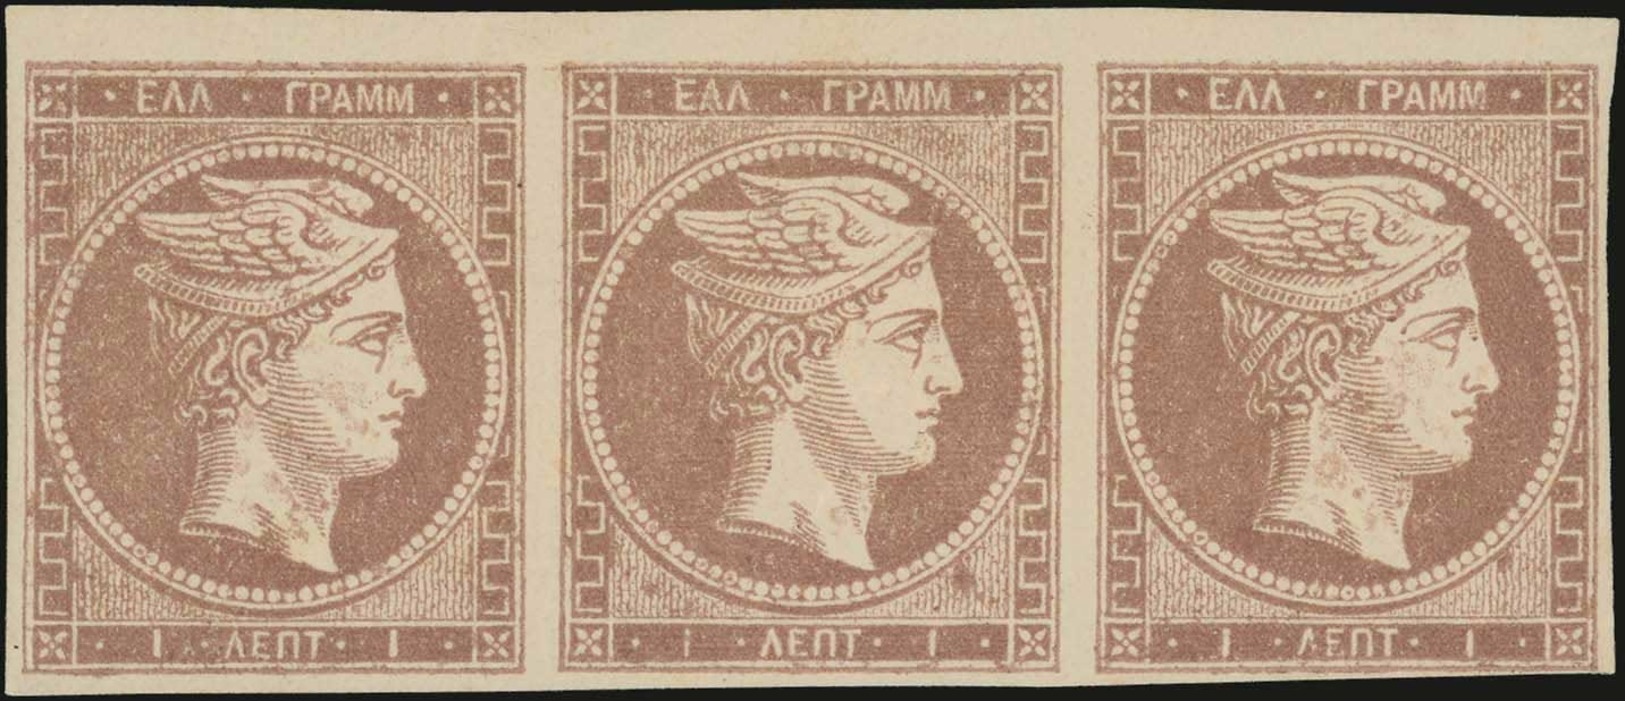 **/* Lot: 49 - Timbres